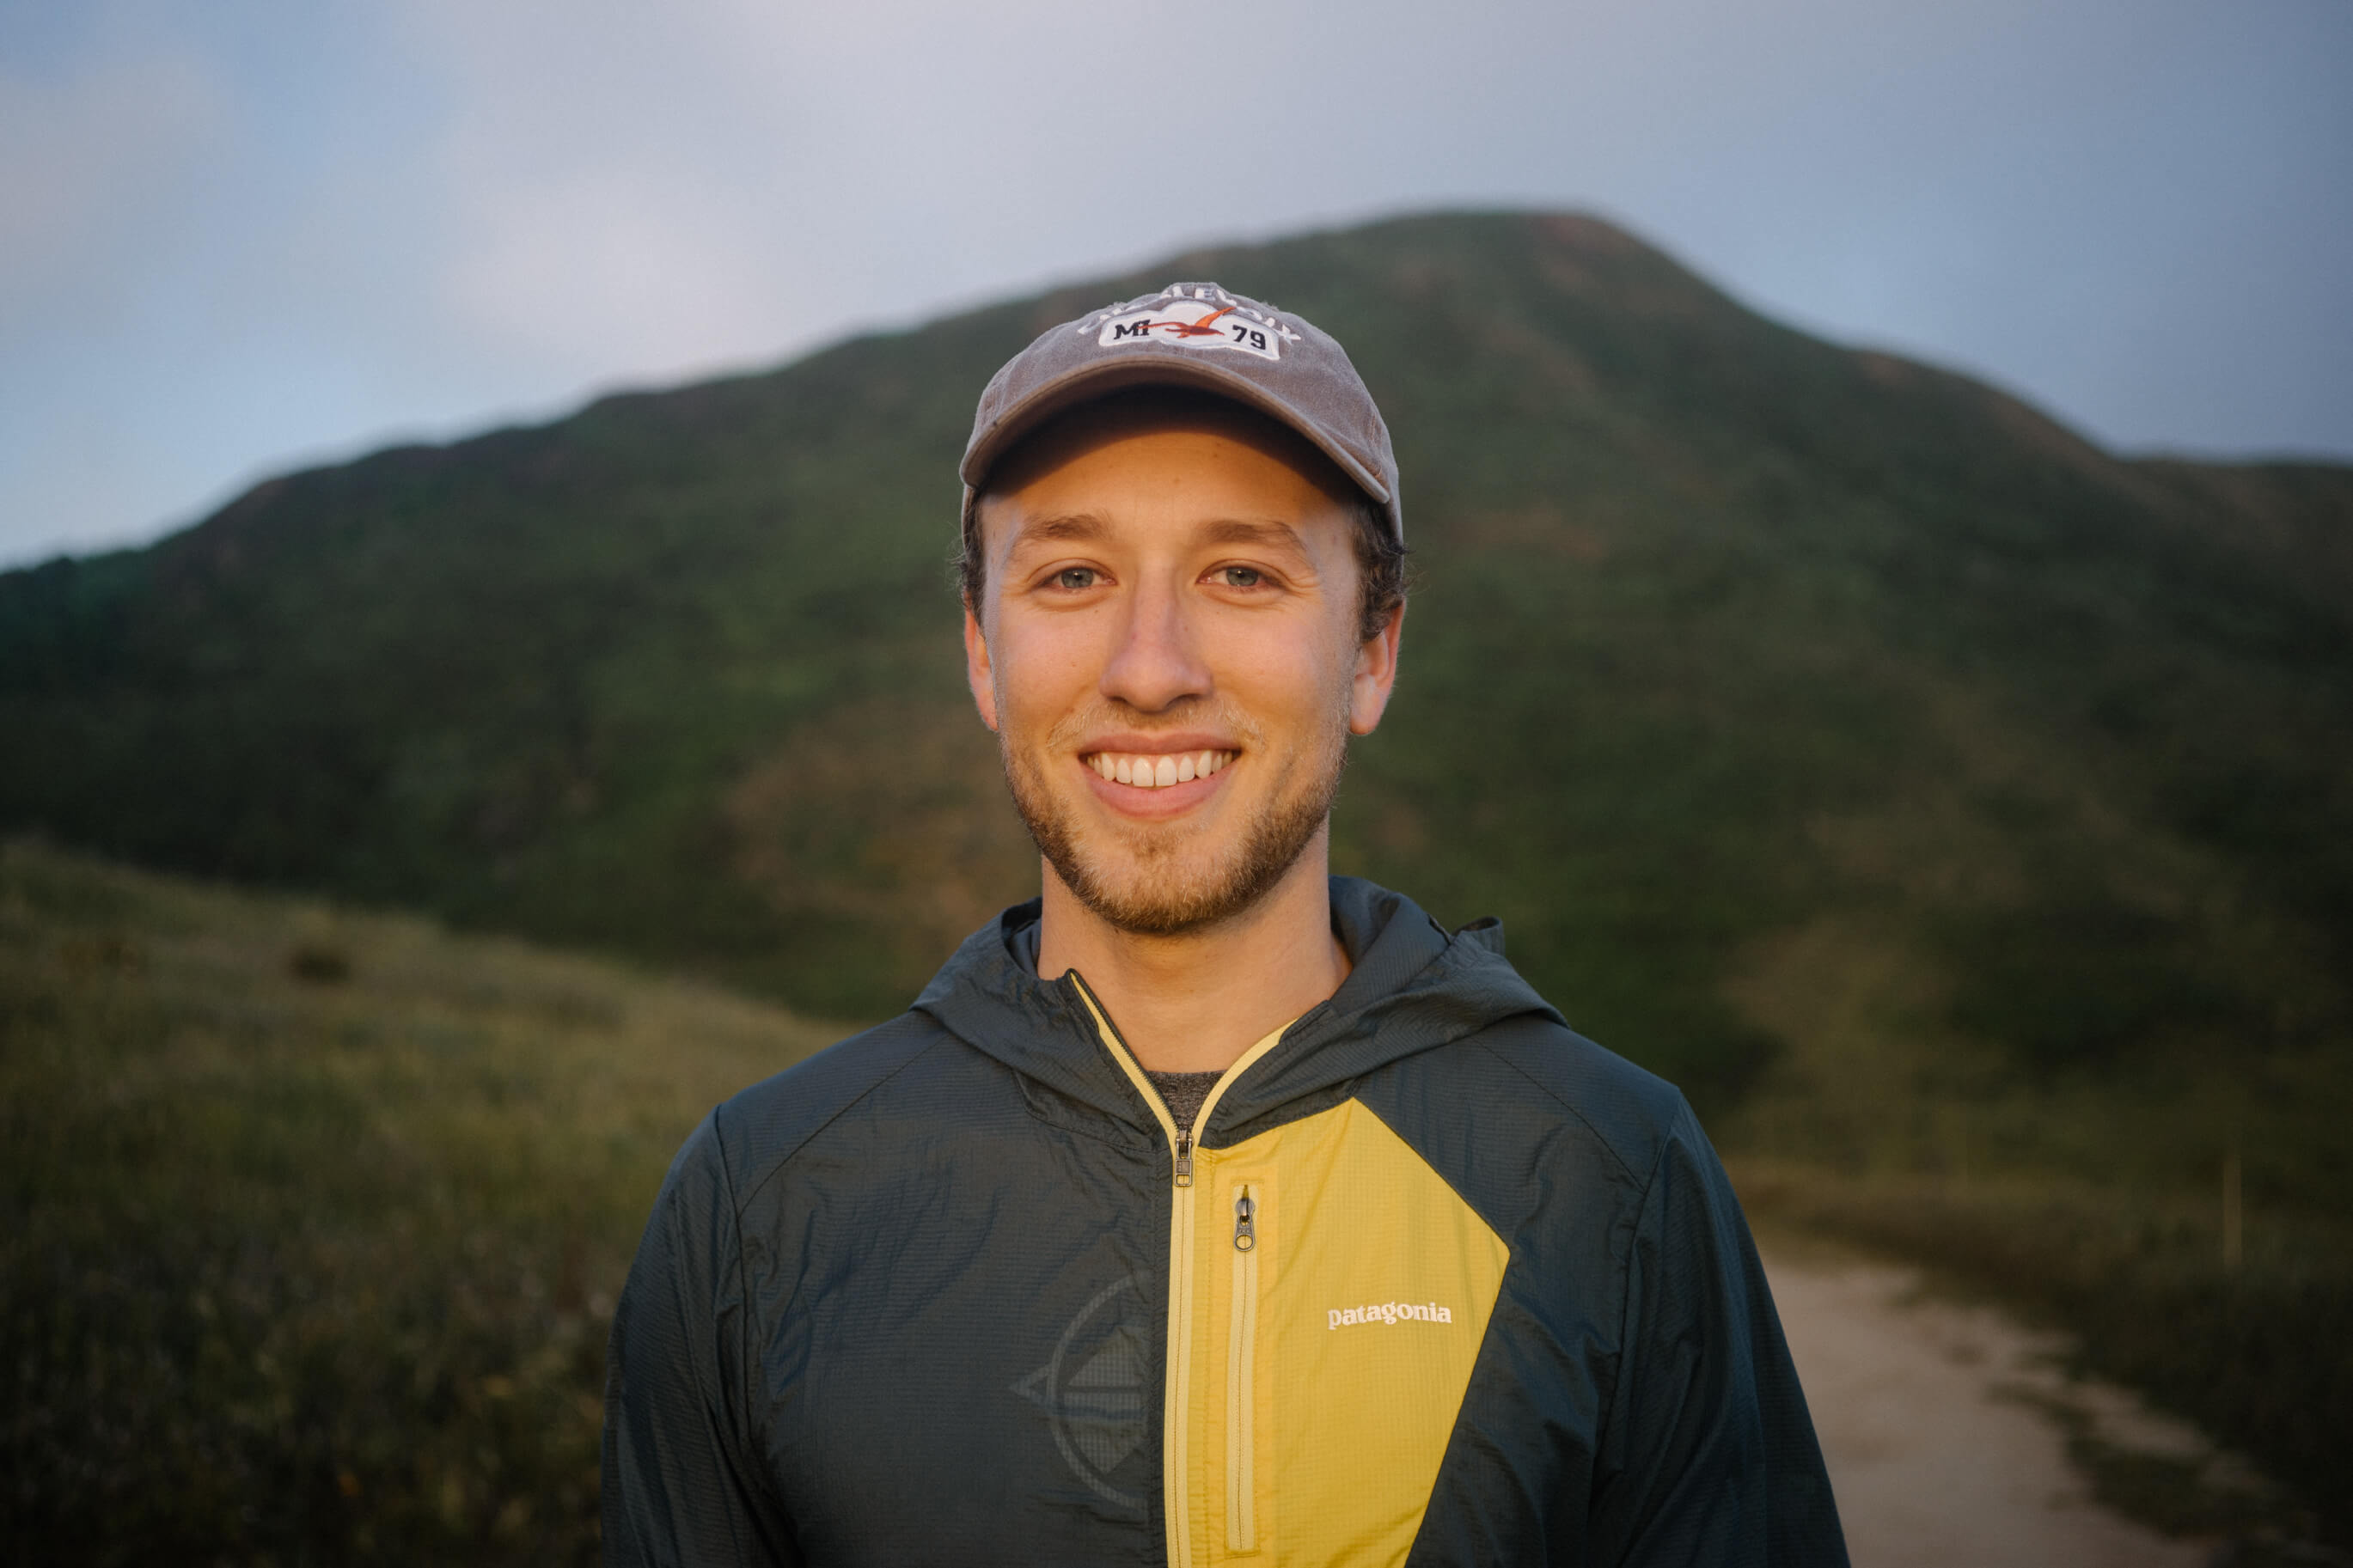 Alex Depue stands outside in front of a green hill and smiles